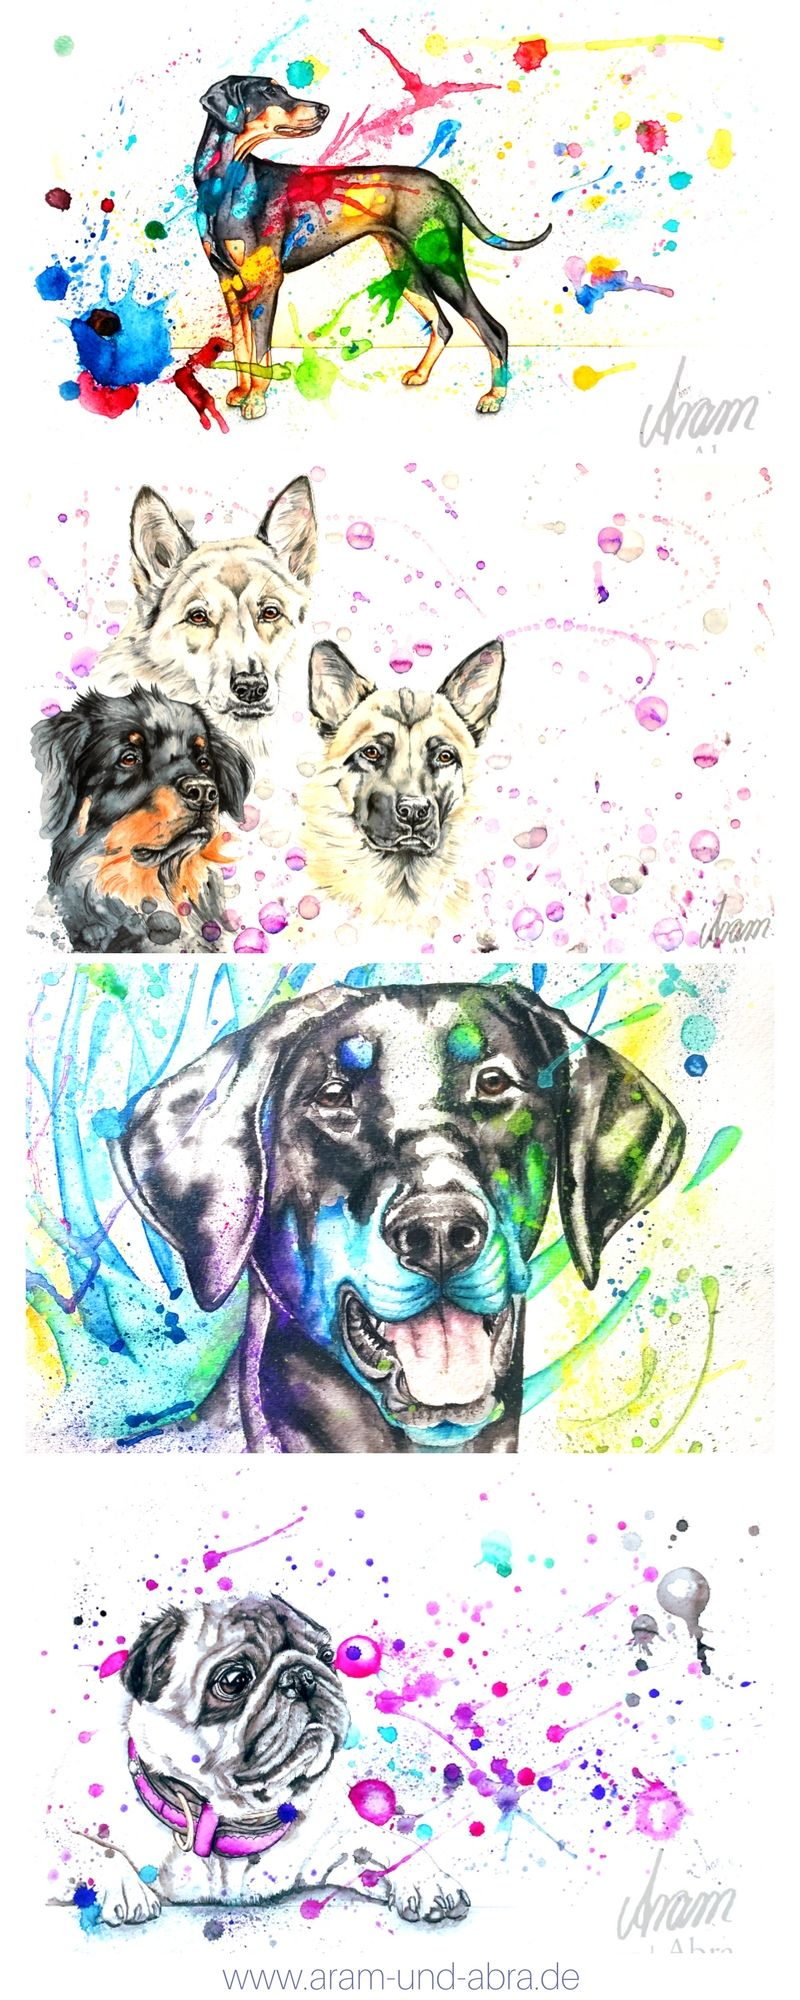 Illustrationen Und Portraits In 2020 Hund Malen Hund